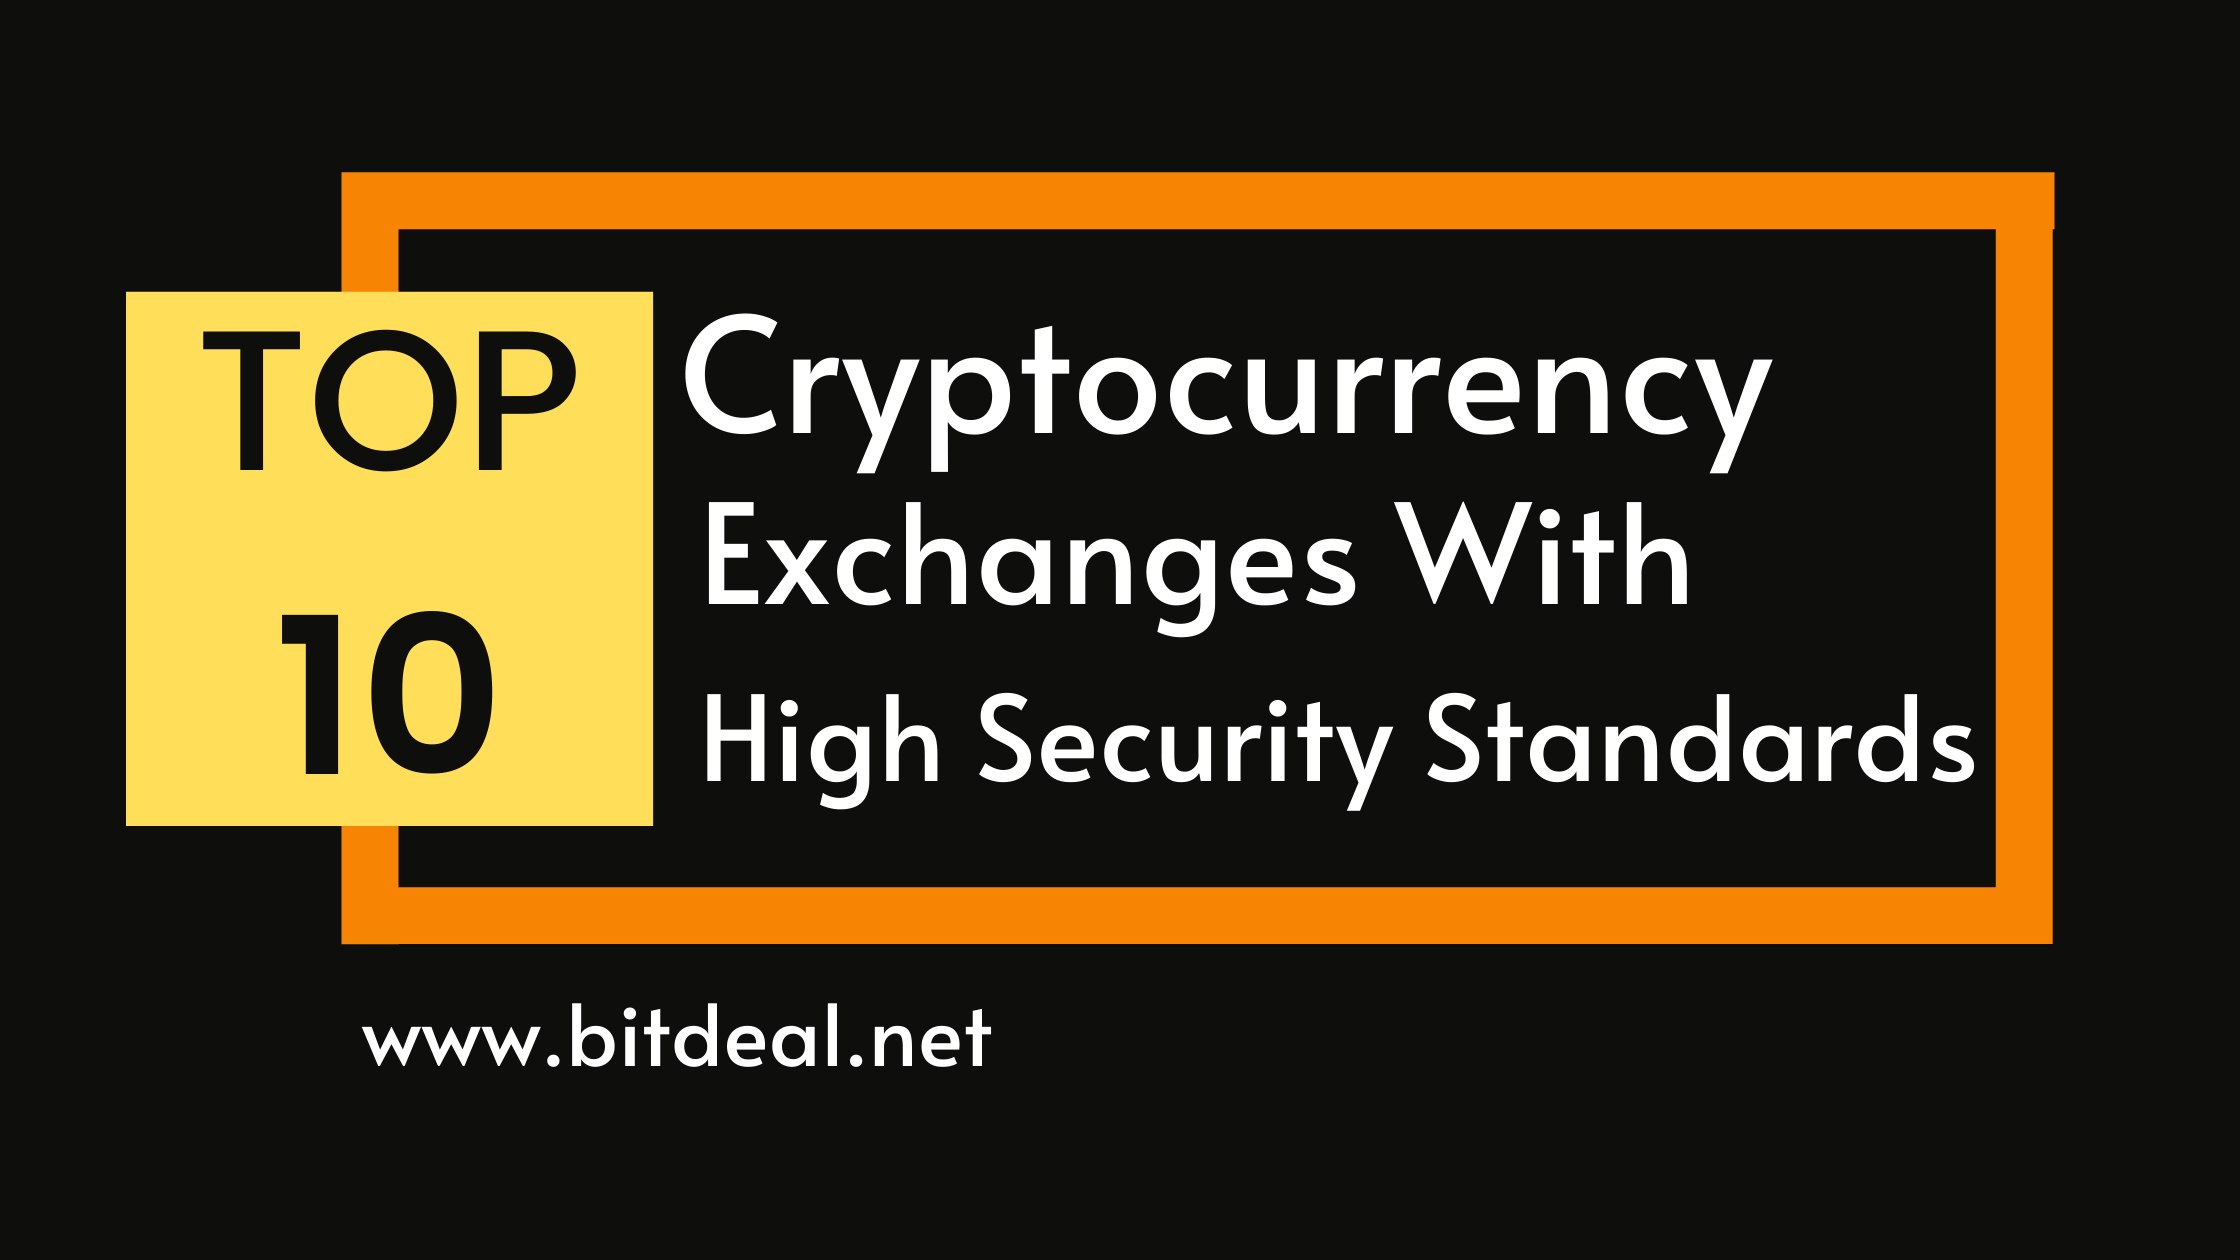 Top 10 Cryptocurrency Exchanges That Meets Security Standards